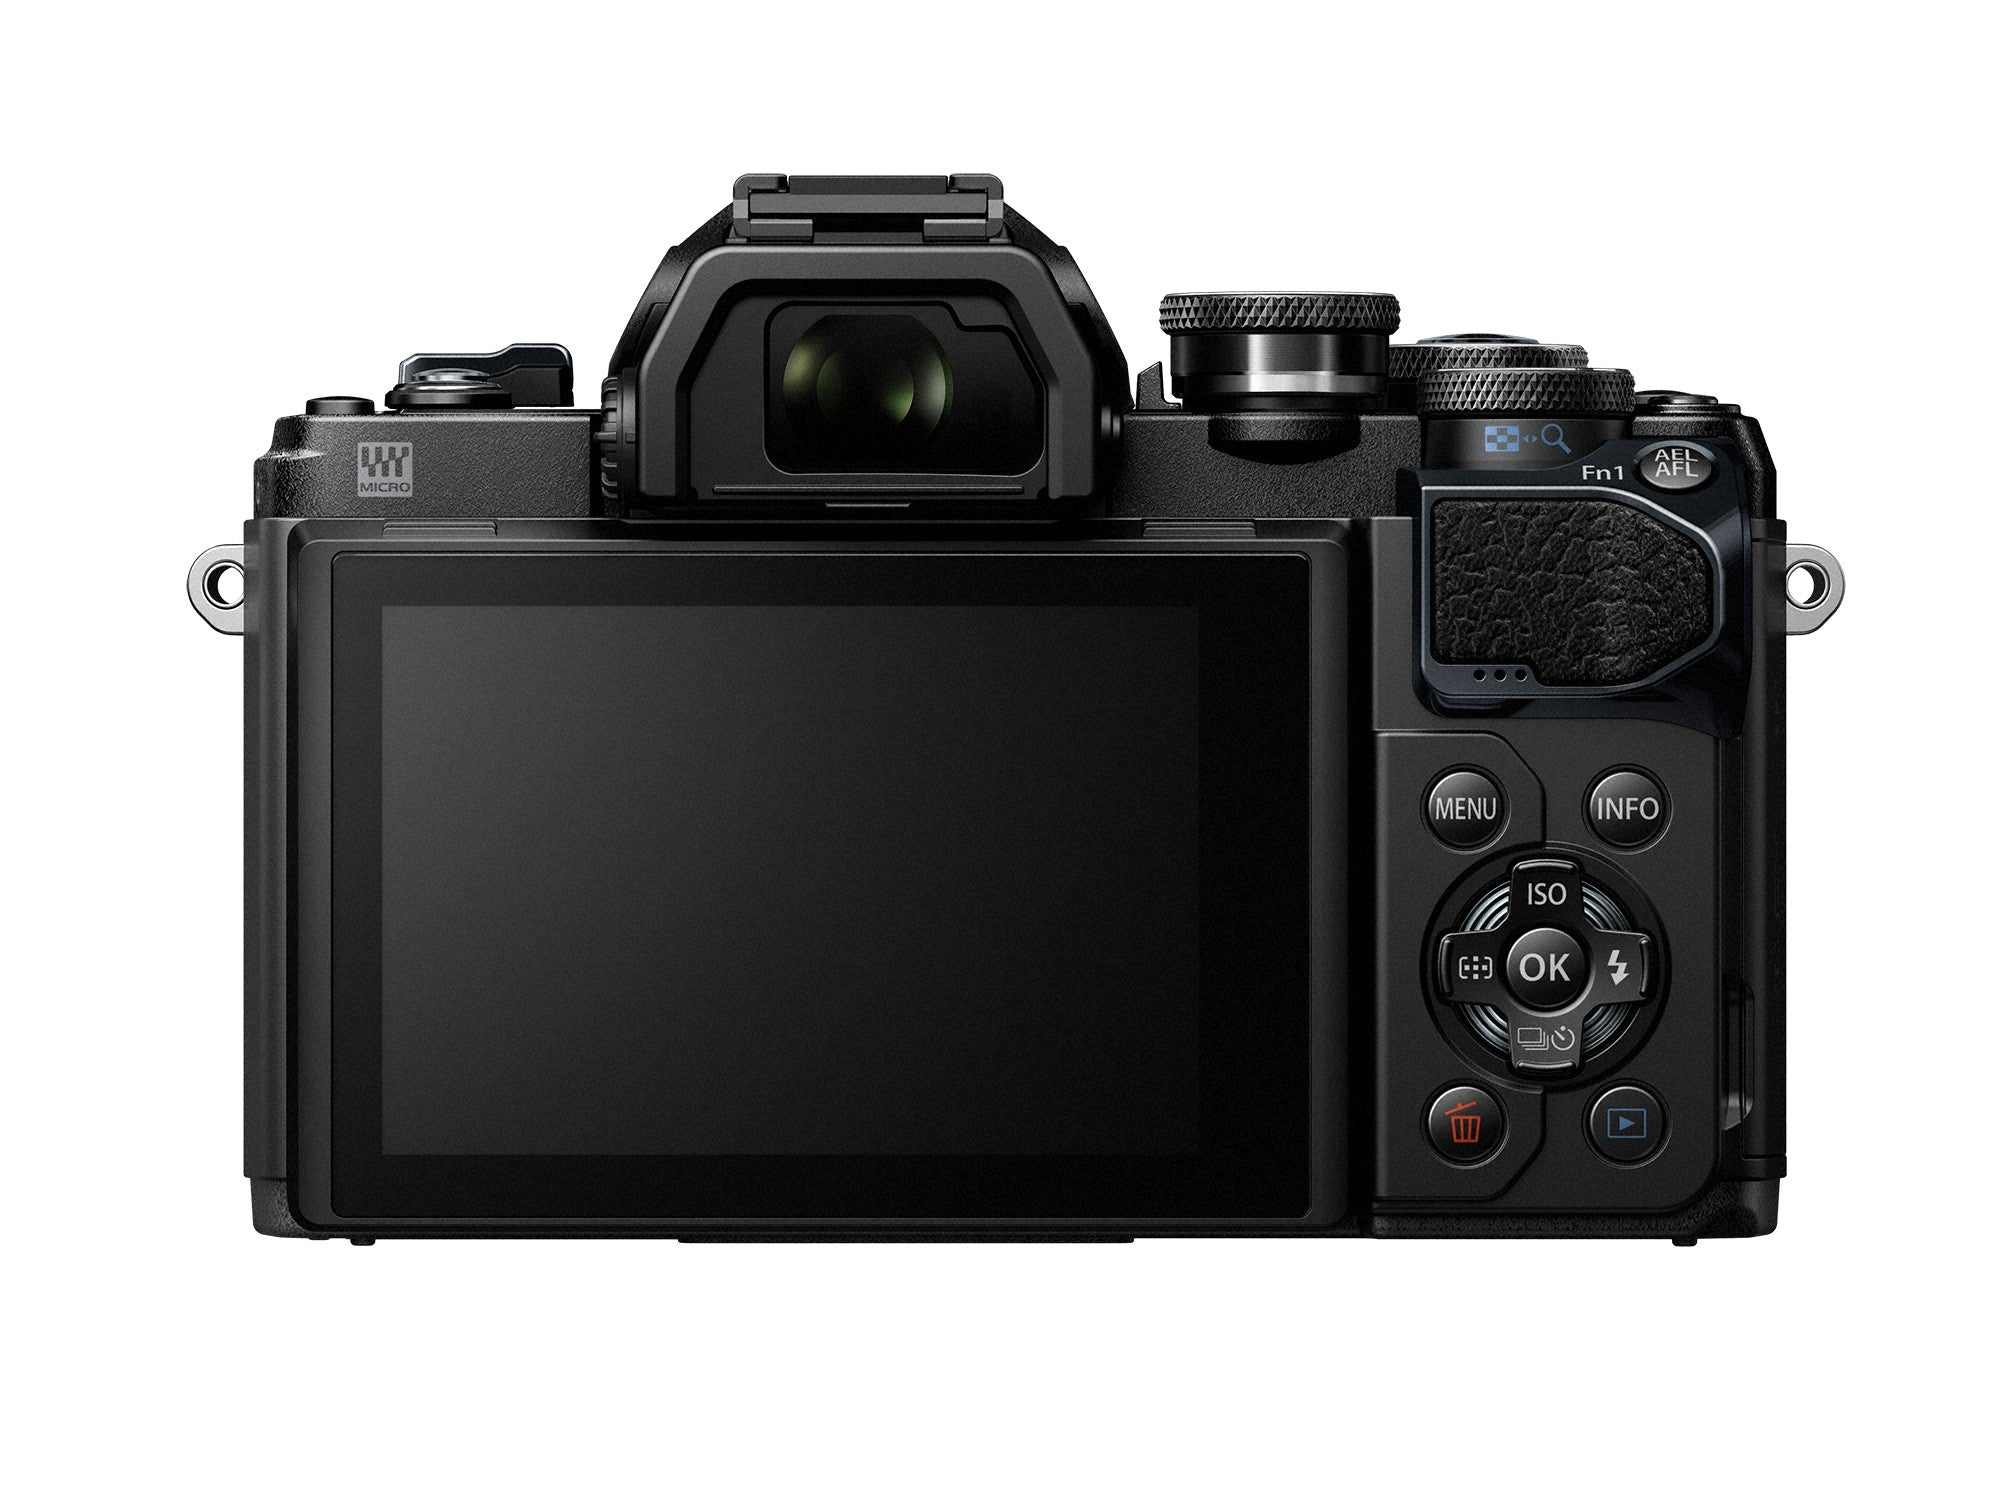 Olympus OM-D E-M10 Mark III Mirrorless Camera - Black